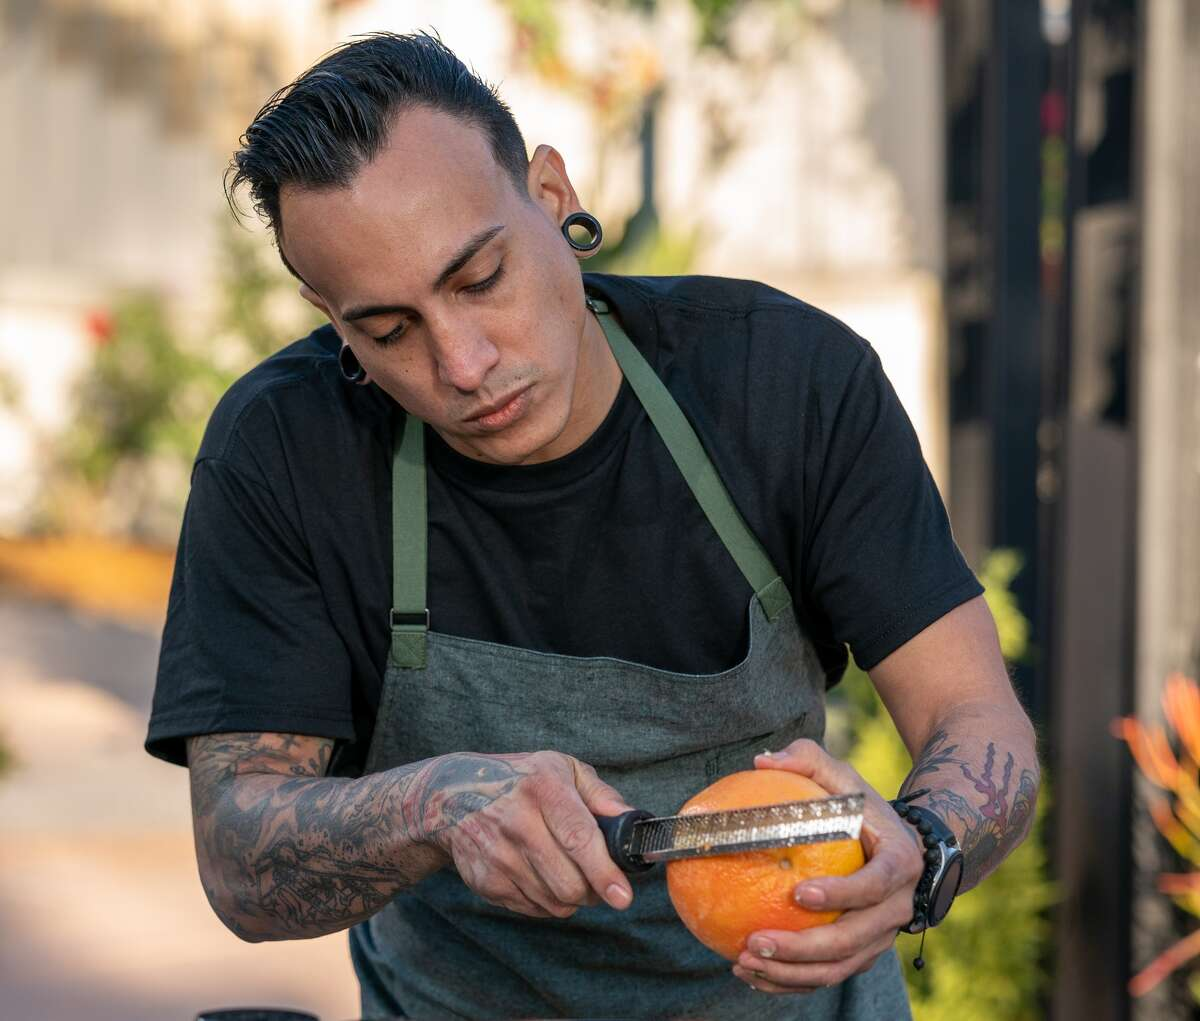 Chef Victor Aguilera of Arepas en Bici in San Francisco, is another Bay Area competitor on